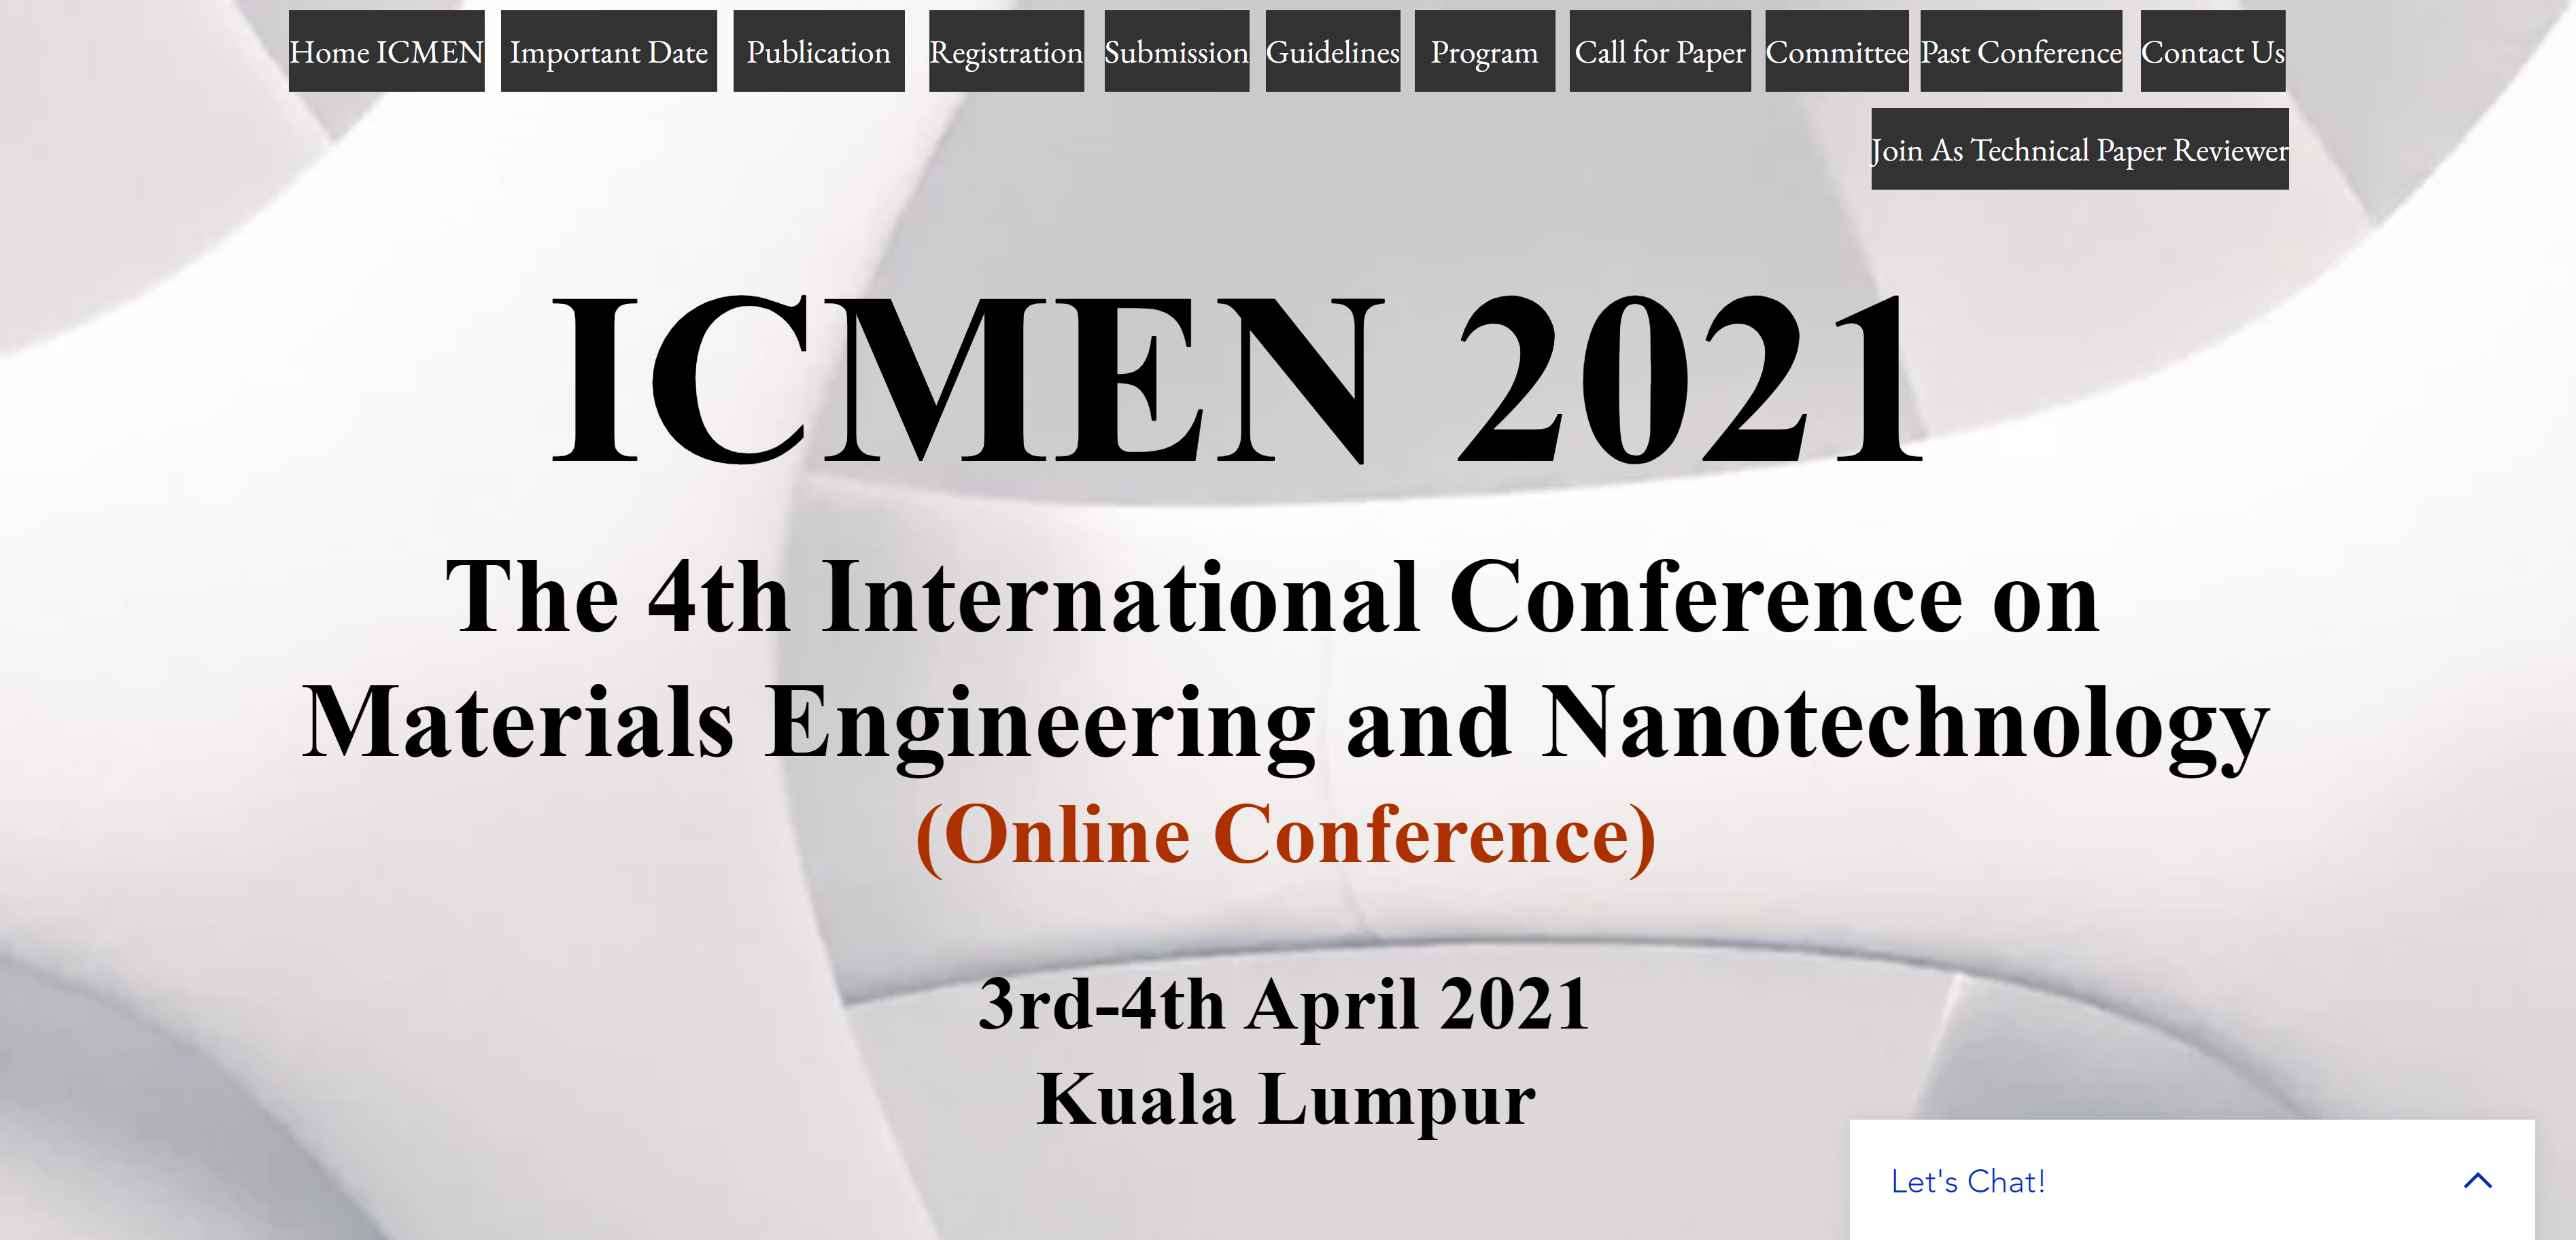 Invitation To The 4th International Conference on Materials Engineering and Nanotechnology 2021